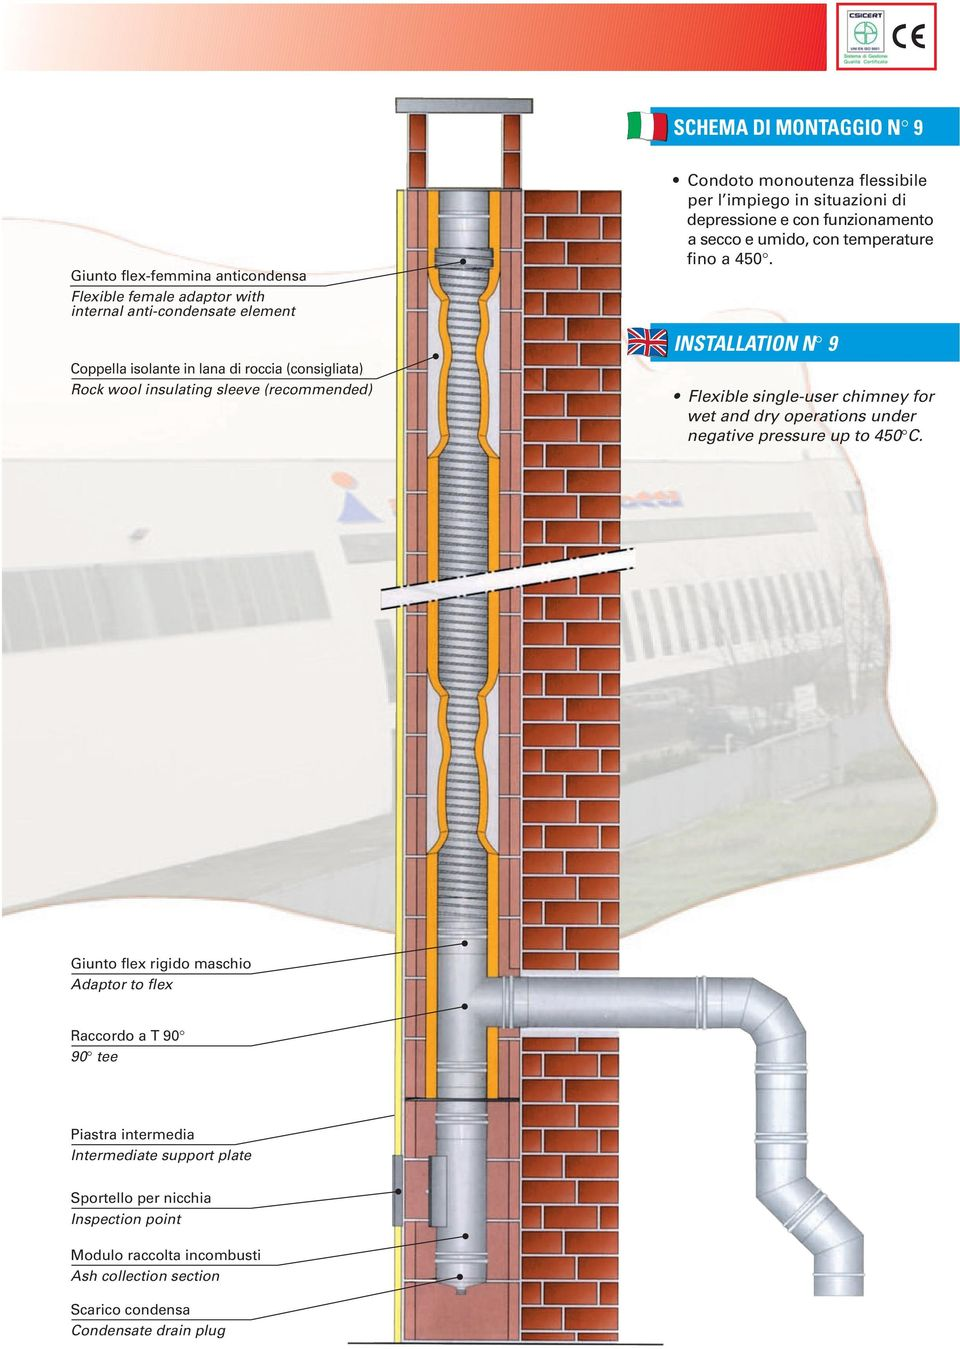 umido, con temperature fino a 450. INSTALLATION N 9 Flexible single-user chimney for wet and dry operations under negative pressure up to 450 C.